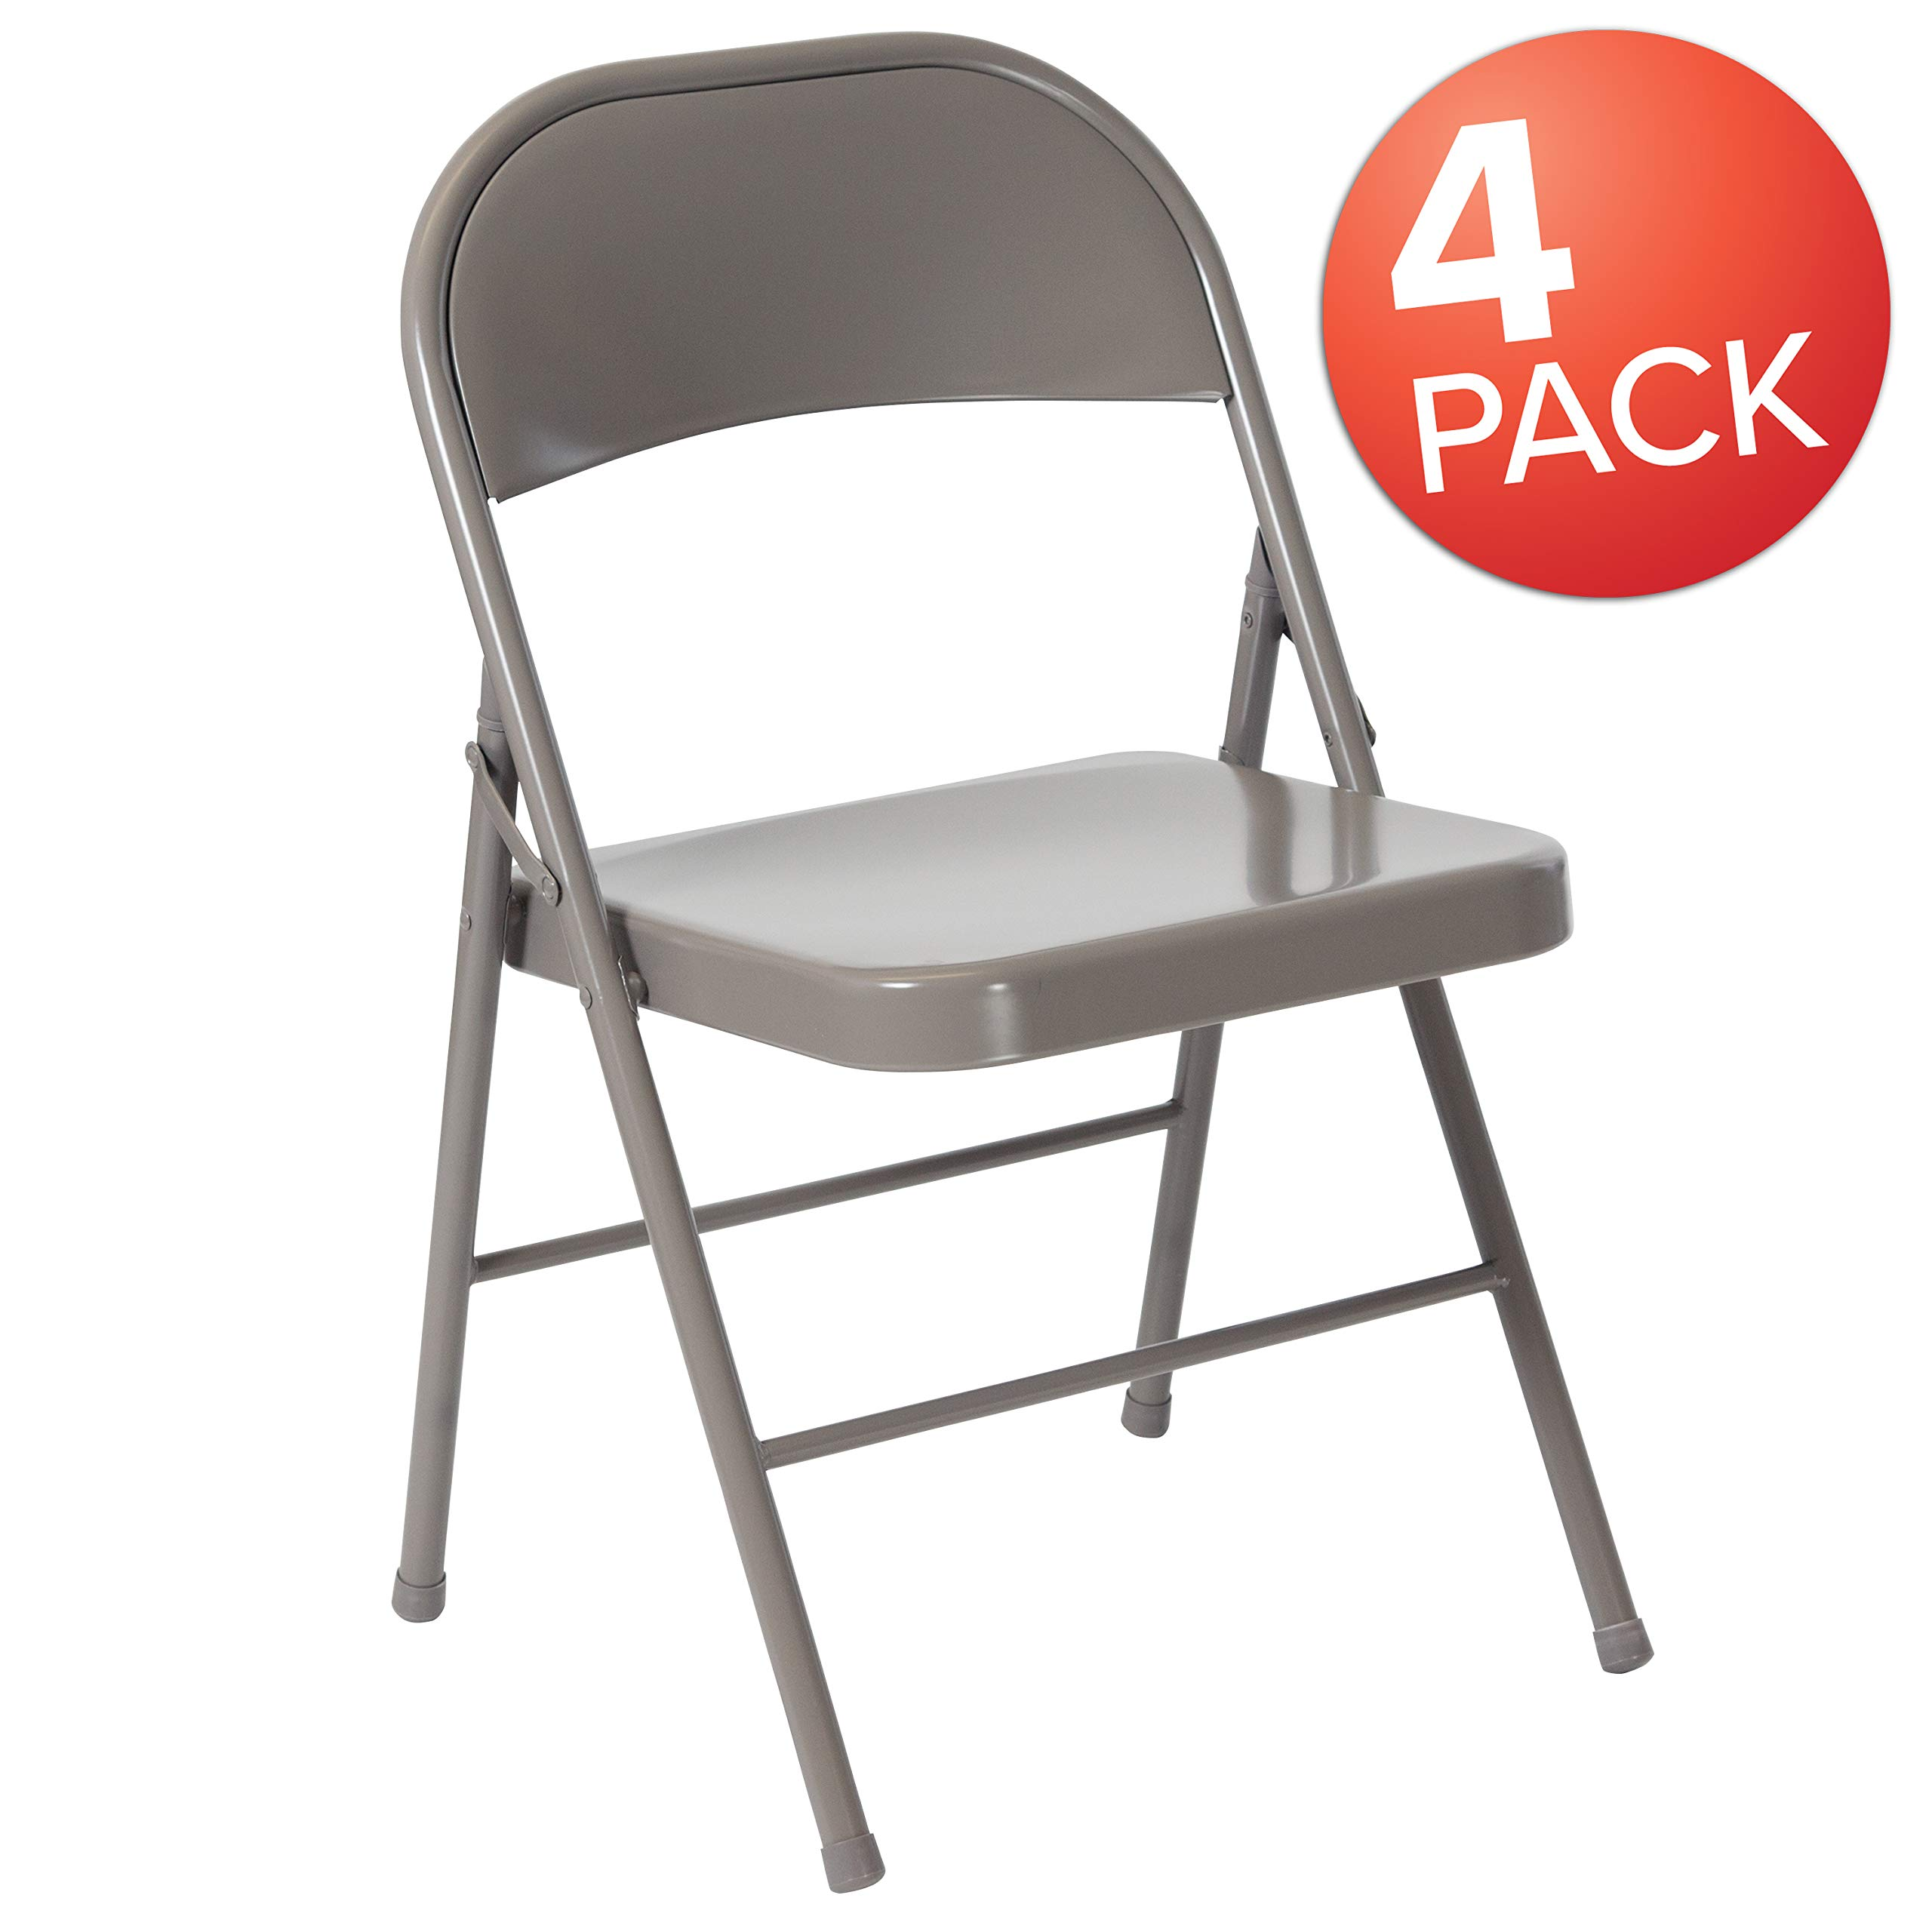 Flash Furniture 4 Pk. HERCULES Series Double Braced Gray Metal Folding Chair - 4-BD-F002-GY-GG by Flash Furniture